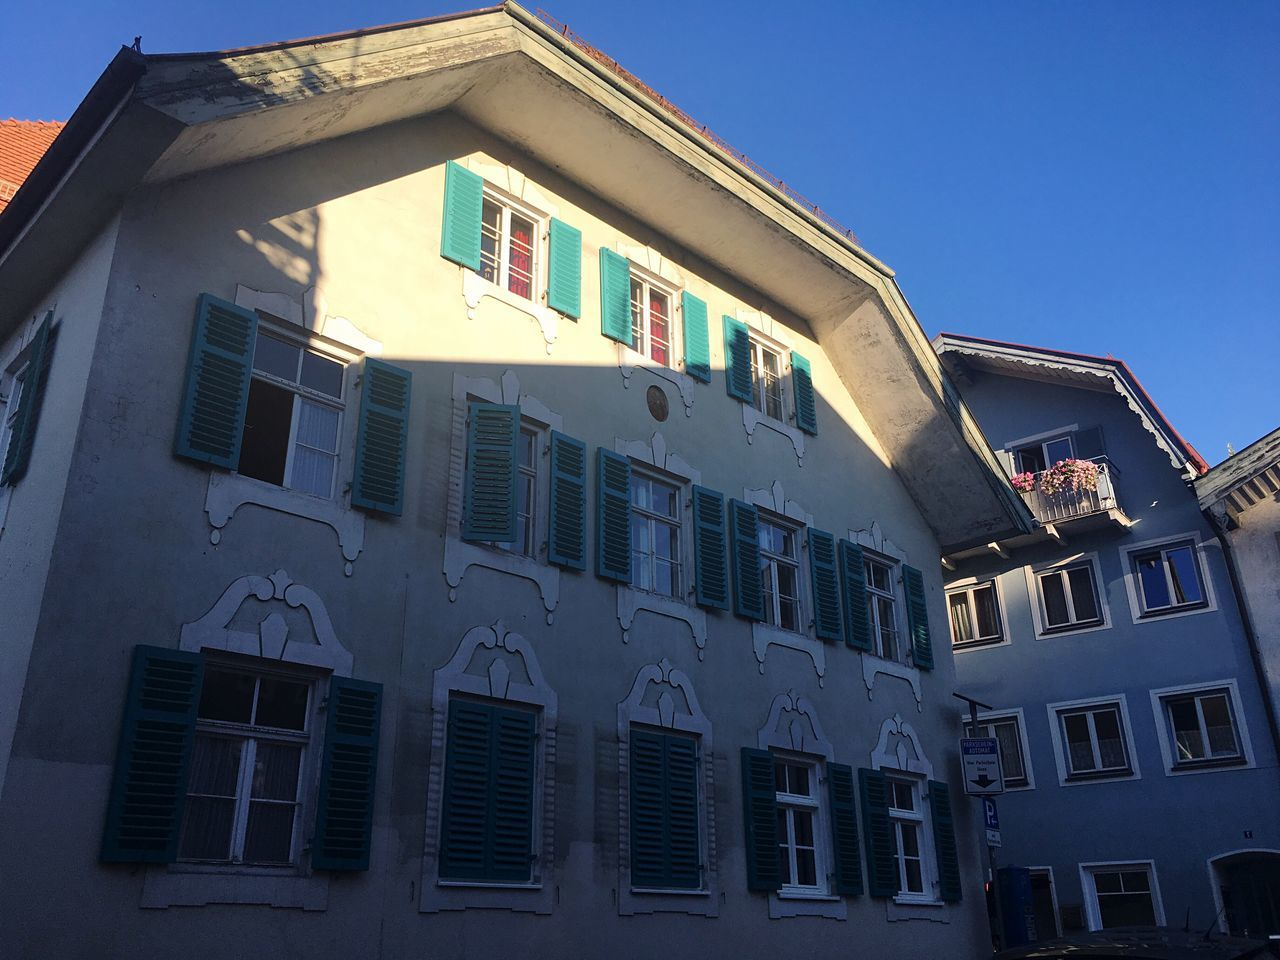 Bavarian Architecture Sunlight Bad Tölz Light And Shadow Built Structure Building Exterior Architecture Low Angle View Residential Building Building House Façade Bavarian Facade Residential District